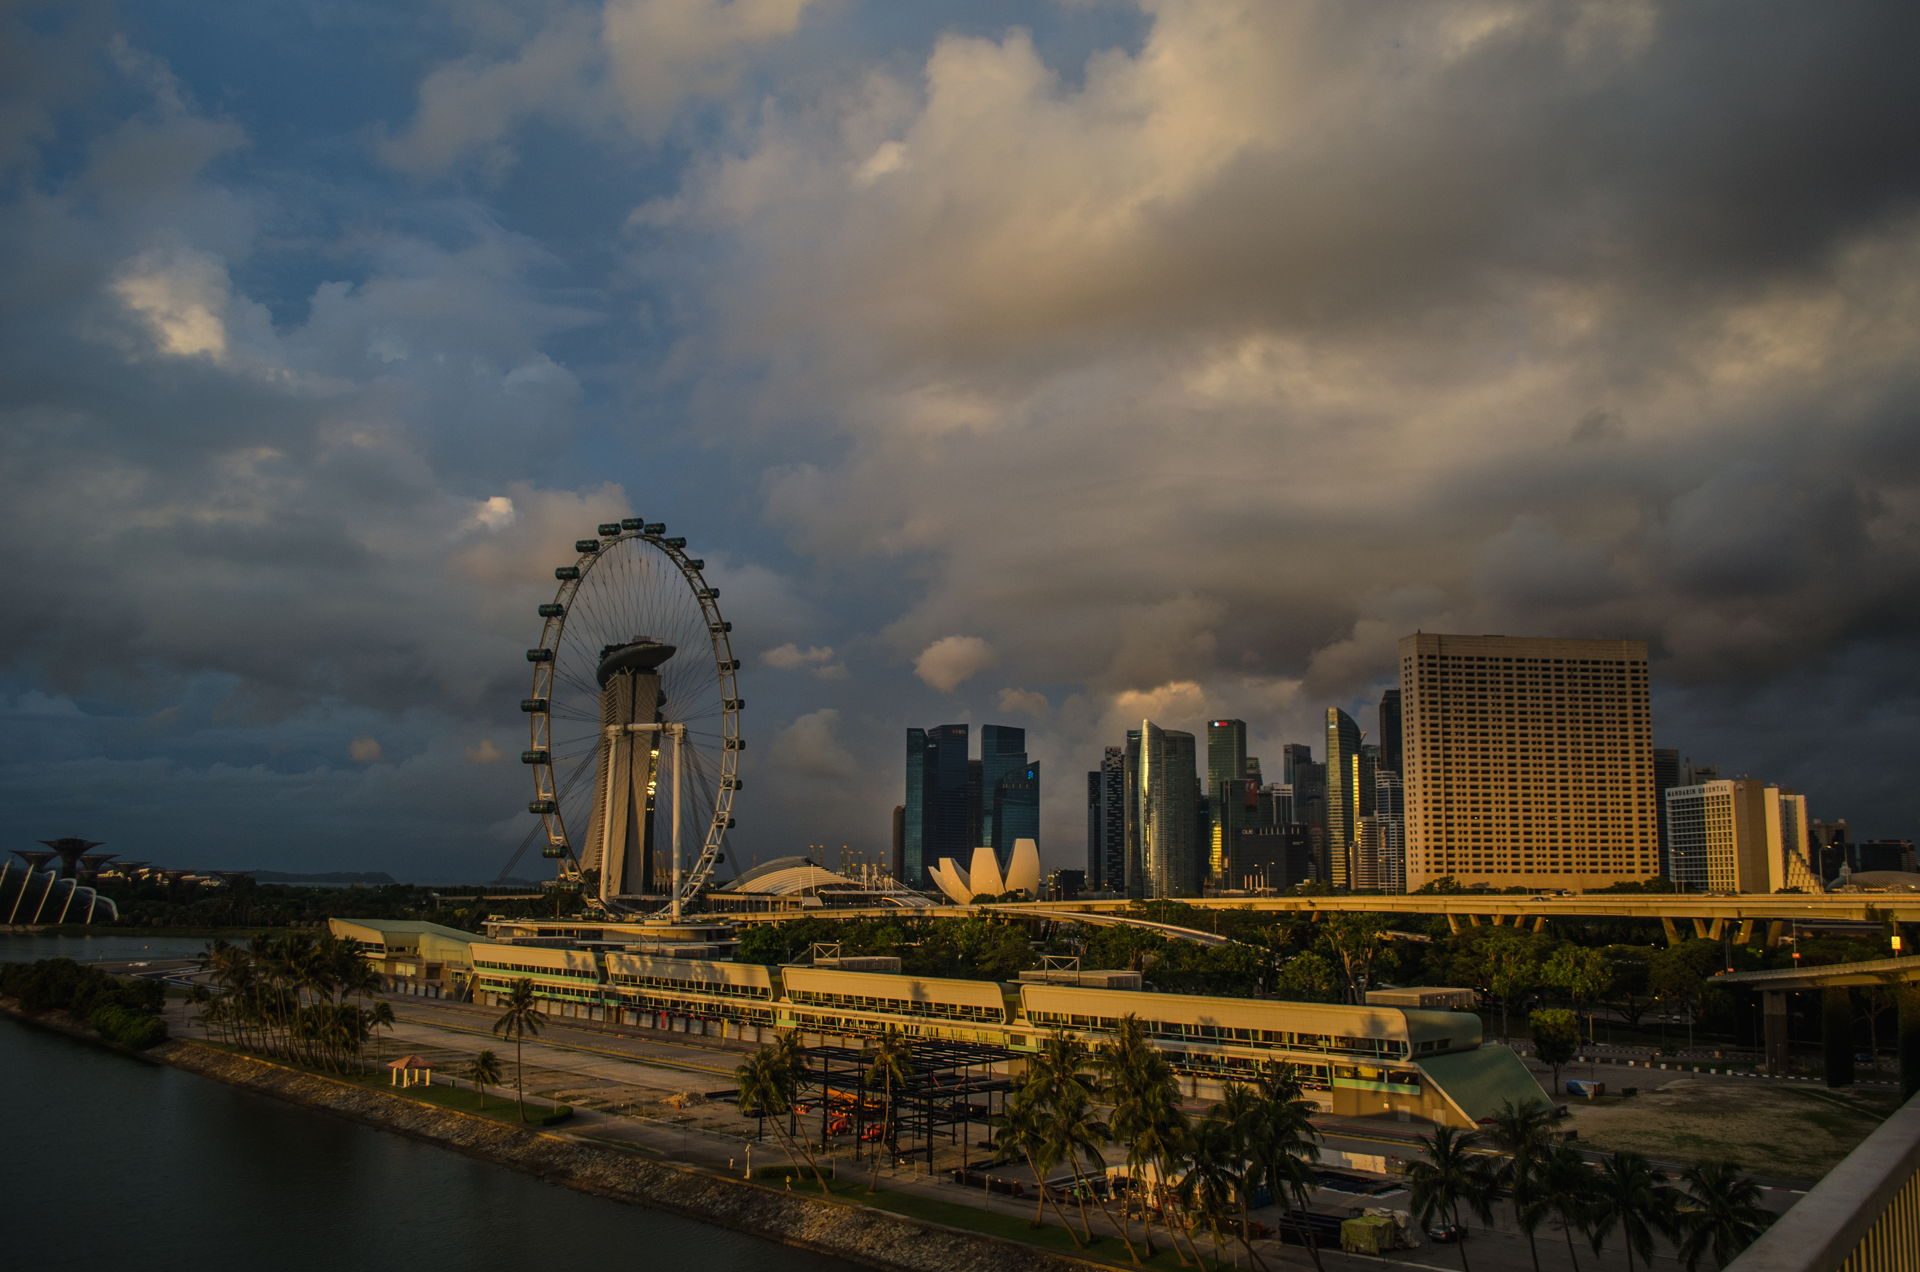 Singapore, singapore downtown, singapore amazing, singapore sunrise, best picture of singapore, best singapore downtown picture, sunrise, sunrise singapore, sunrise singapore downtown, sunrise flyer singapore, where to fly drone at singapore, singapore drone guidelines, best drone places singapore, singapore laws, singapore regulations